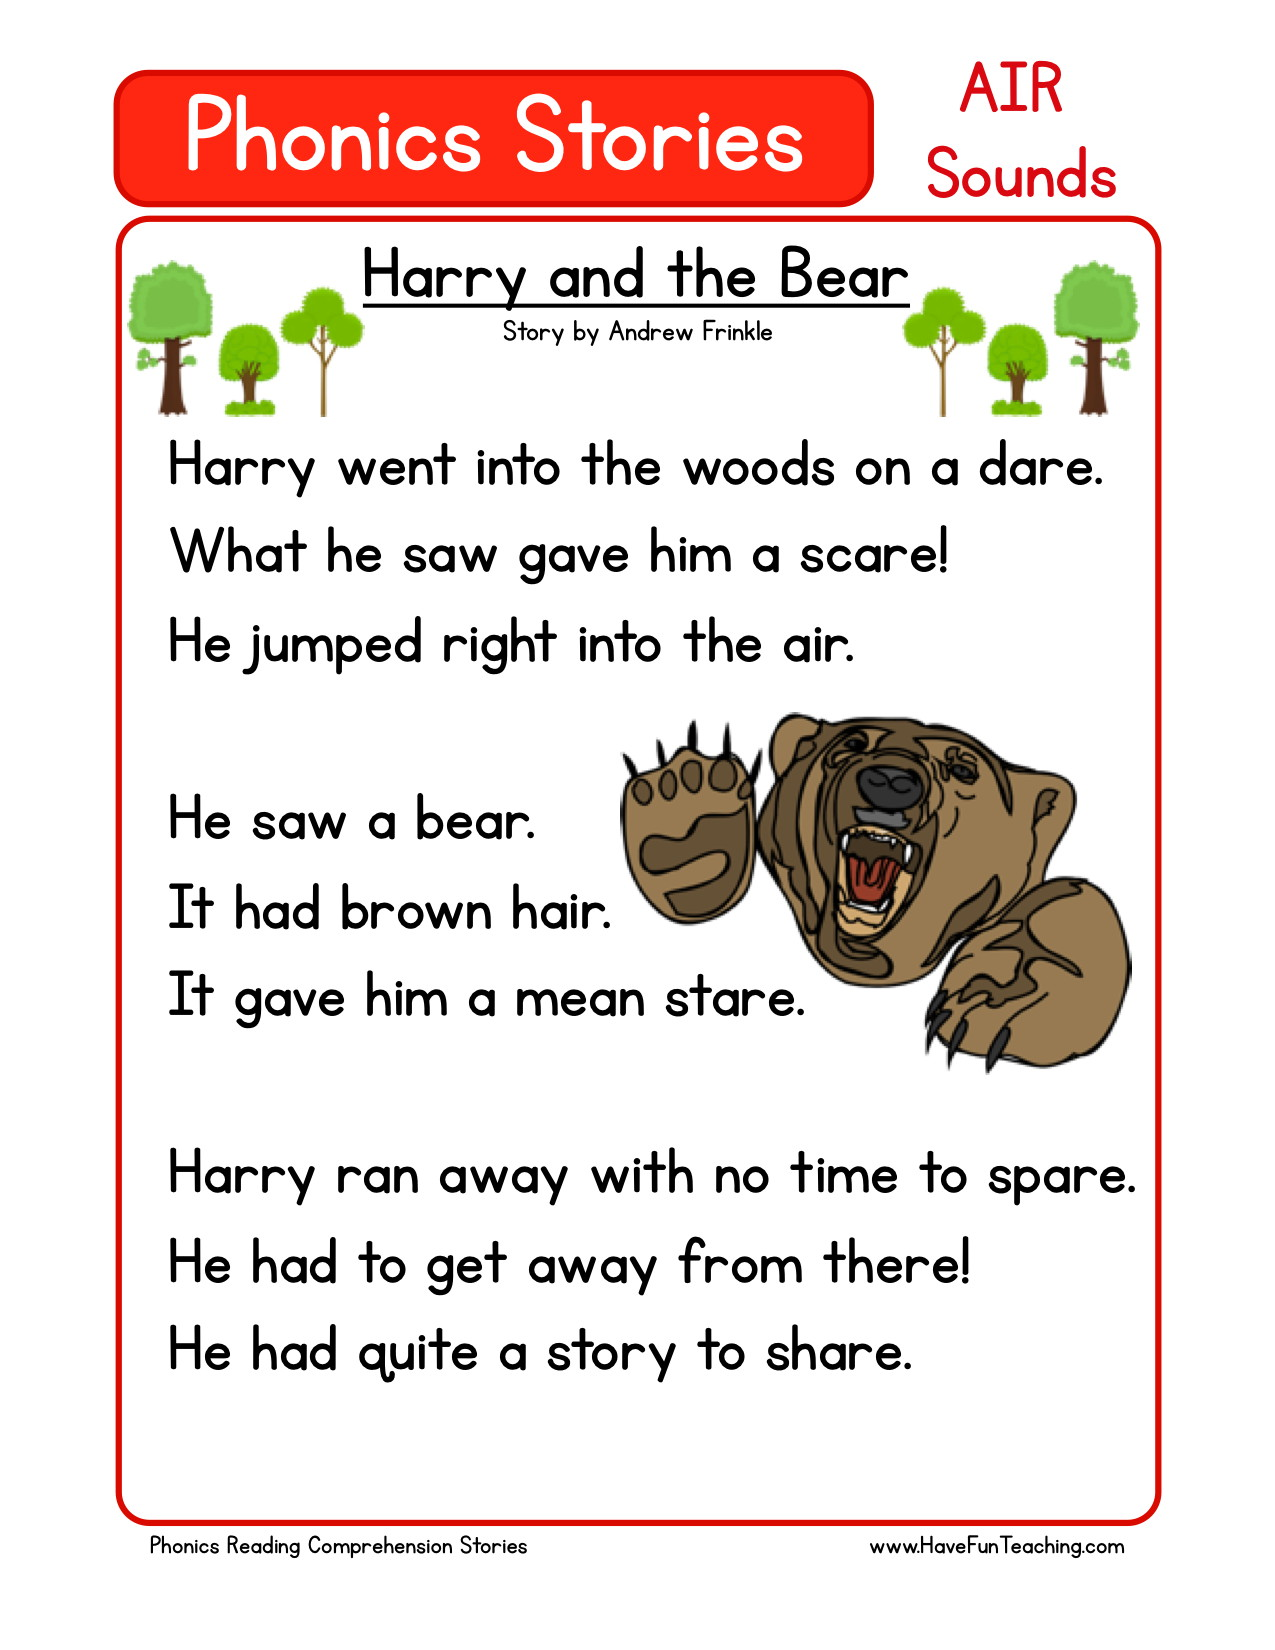 Reading Comprehension Worksheet - Harry and the Bear